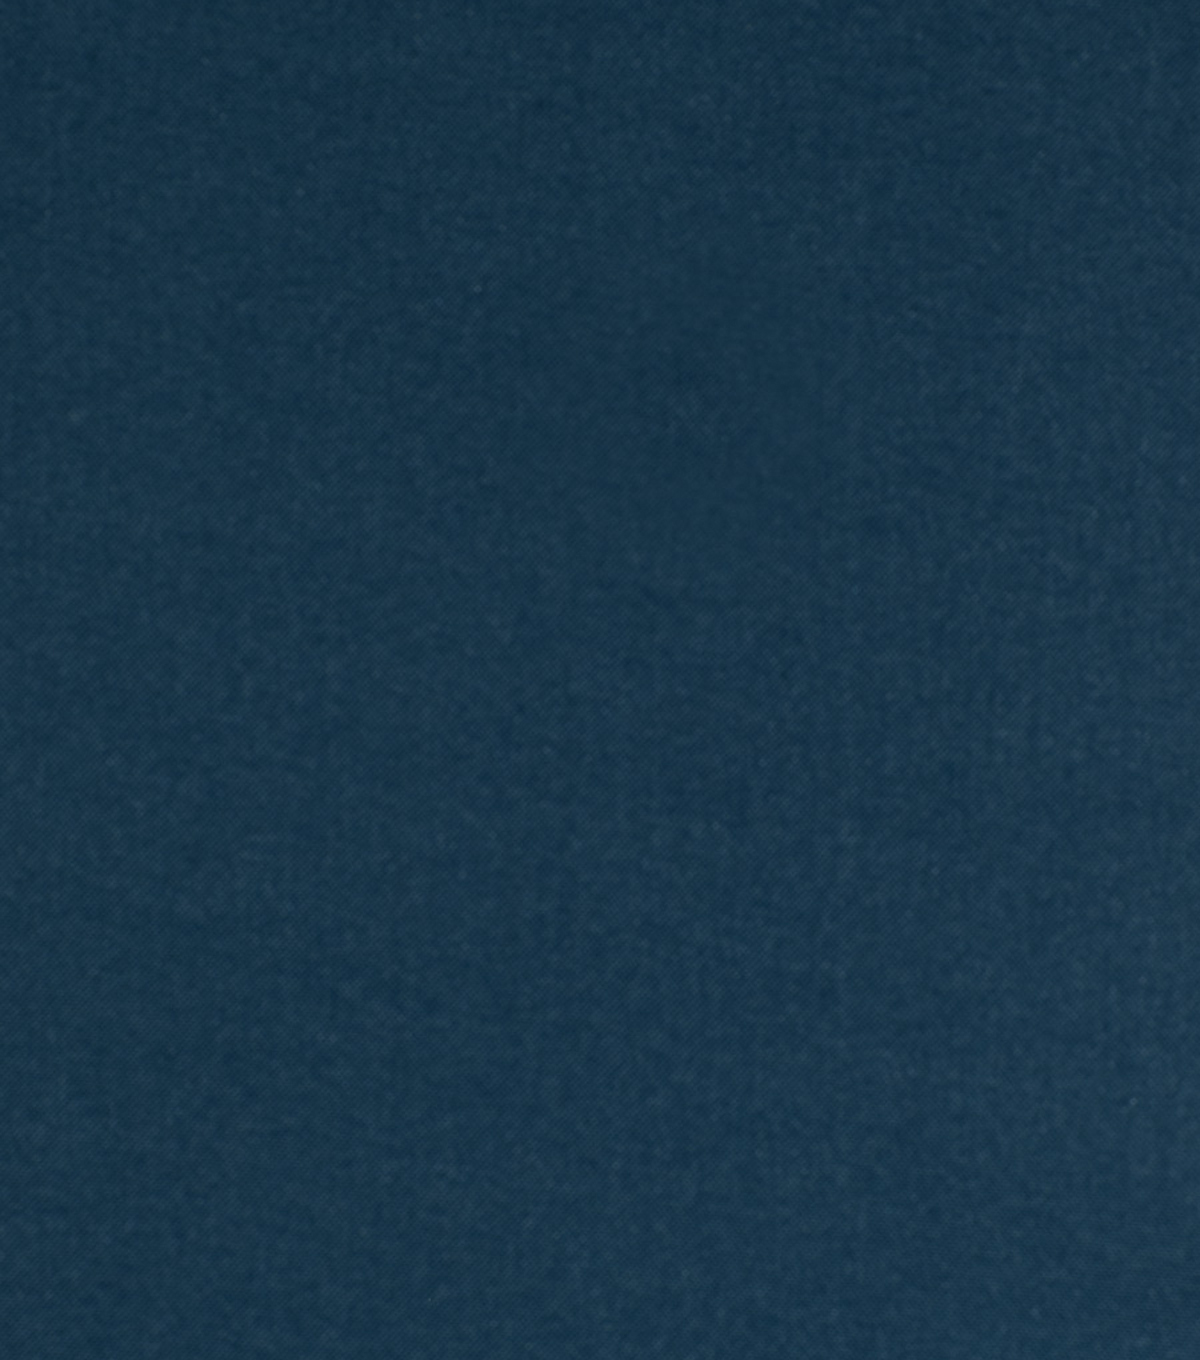 Home Decor 8\u0022x8\u0022 Fabric Swatch-Solid Fabric Signature Series Solitaire  Teal